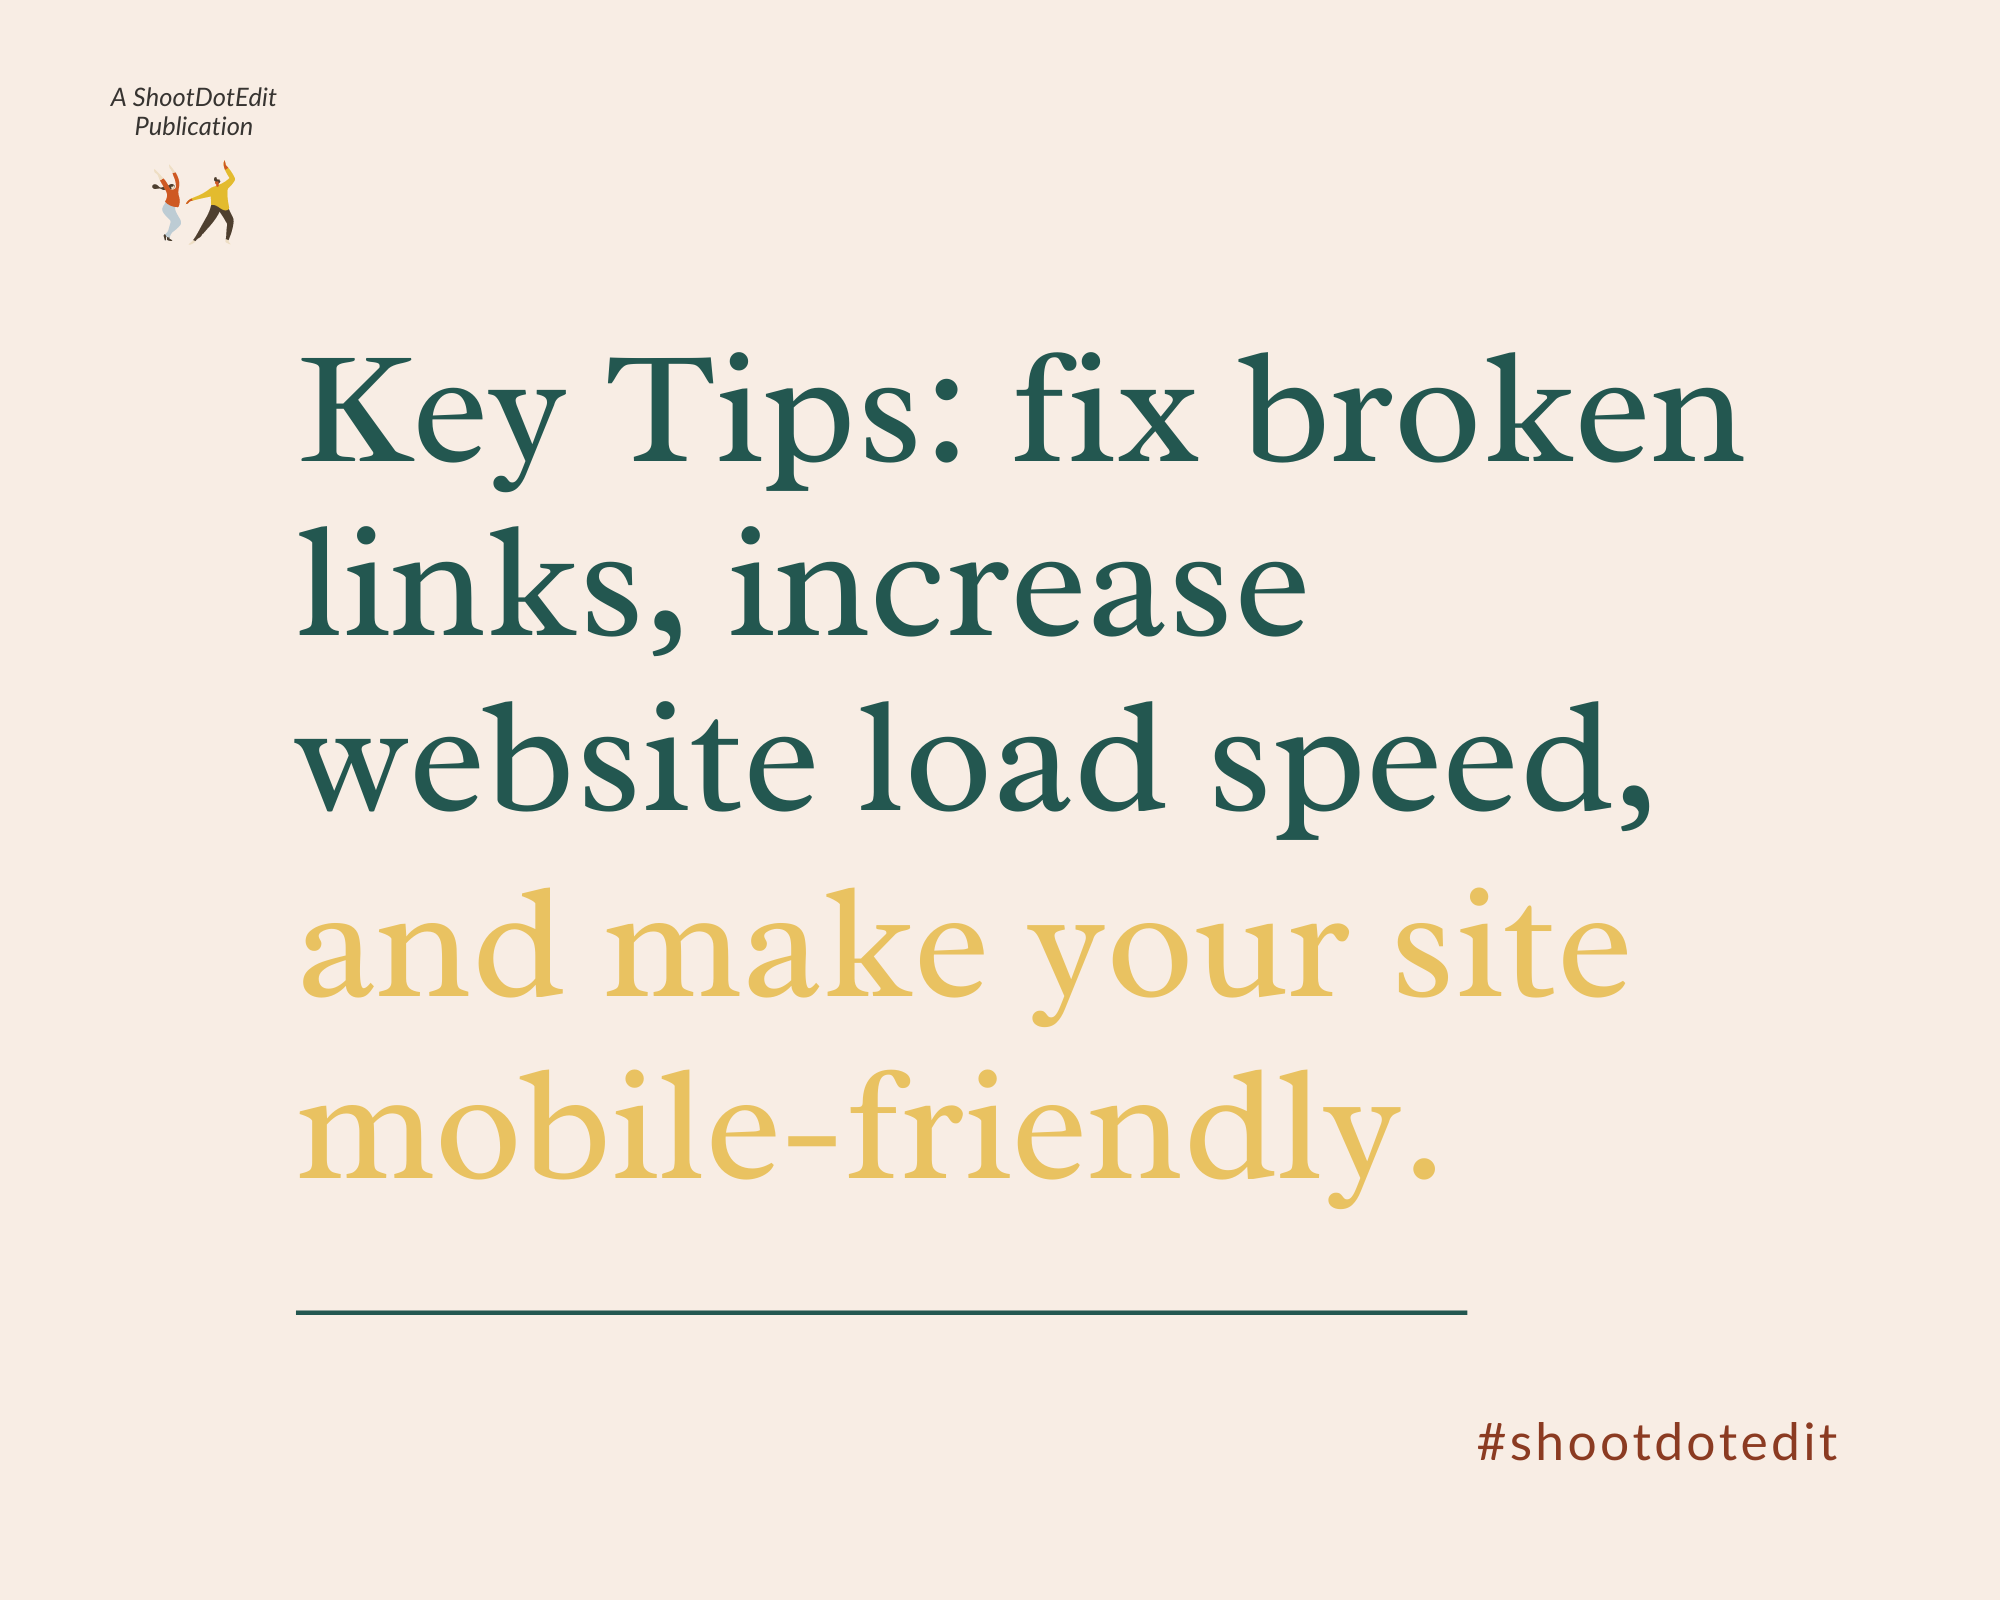 Infographic stating key tips: fix broken links, increase website load speed and make your site mobile-friendly